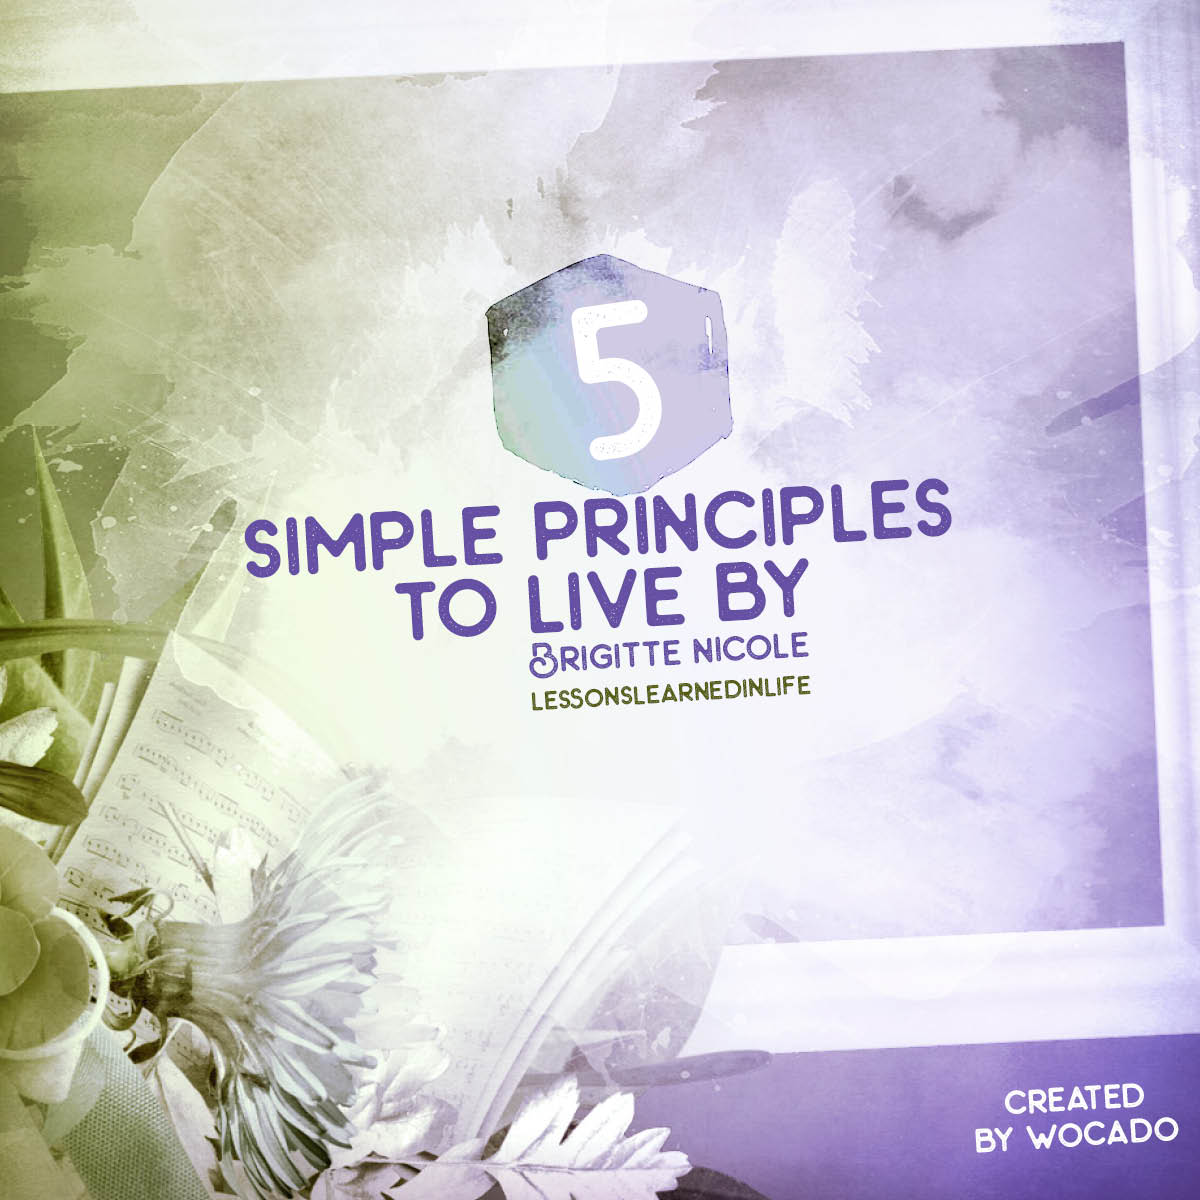 5 Simple Principles to Live By - Brigitte Nicole Video Quote by wocado